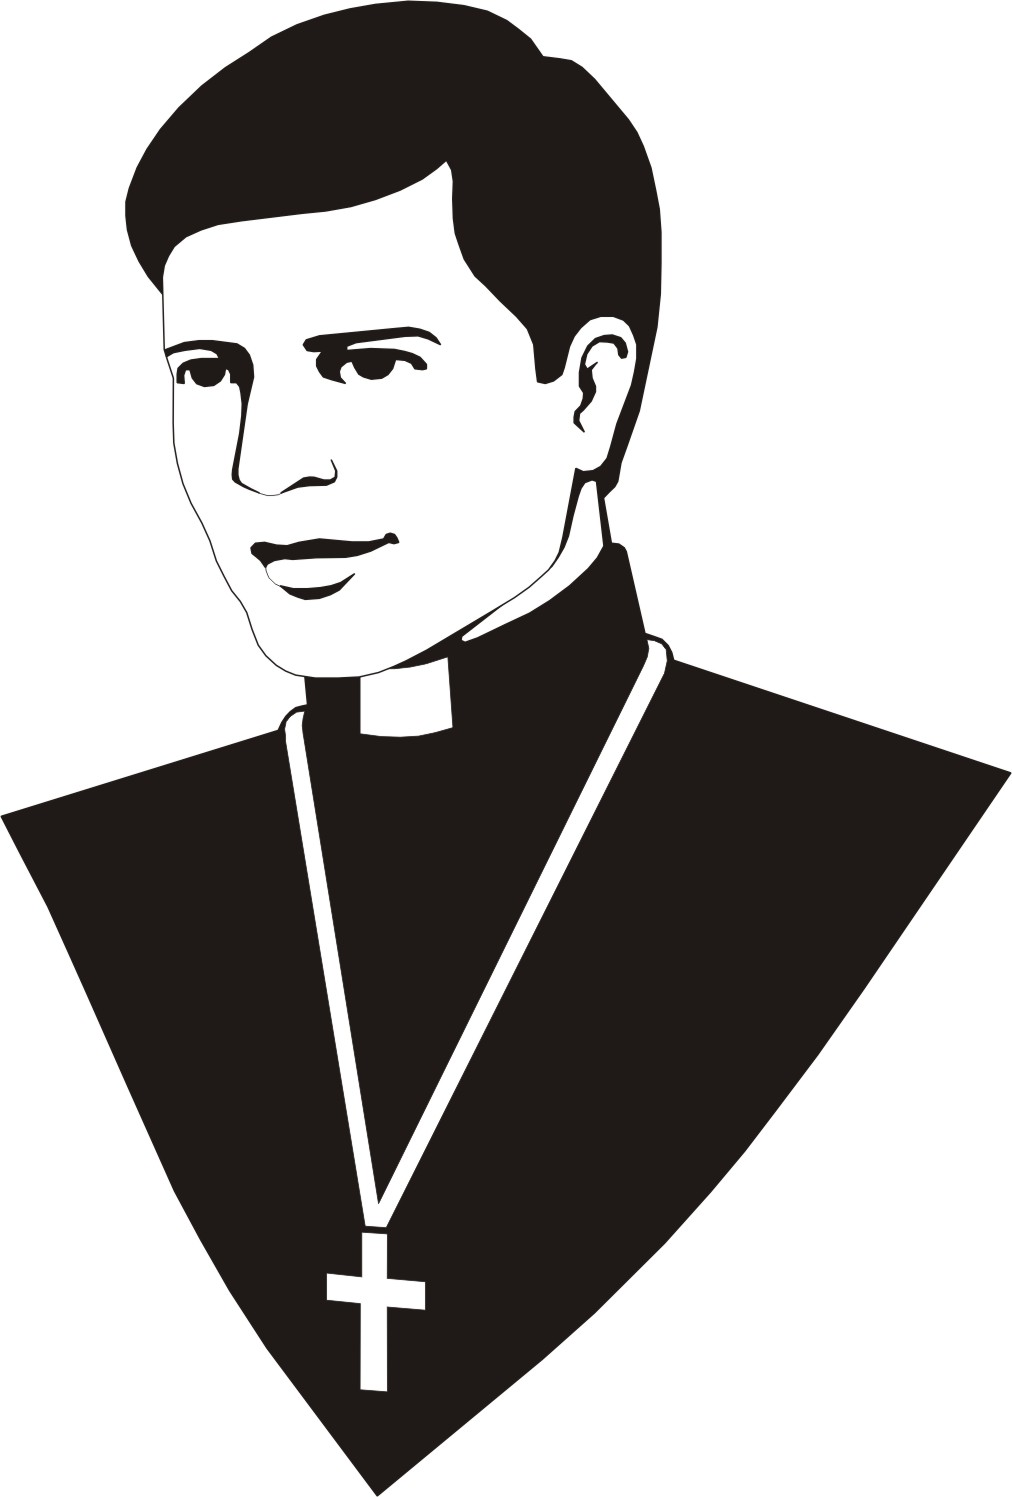 hight resolution of priest blessing boy free image photos and stock clipart image